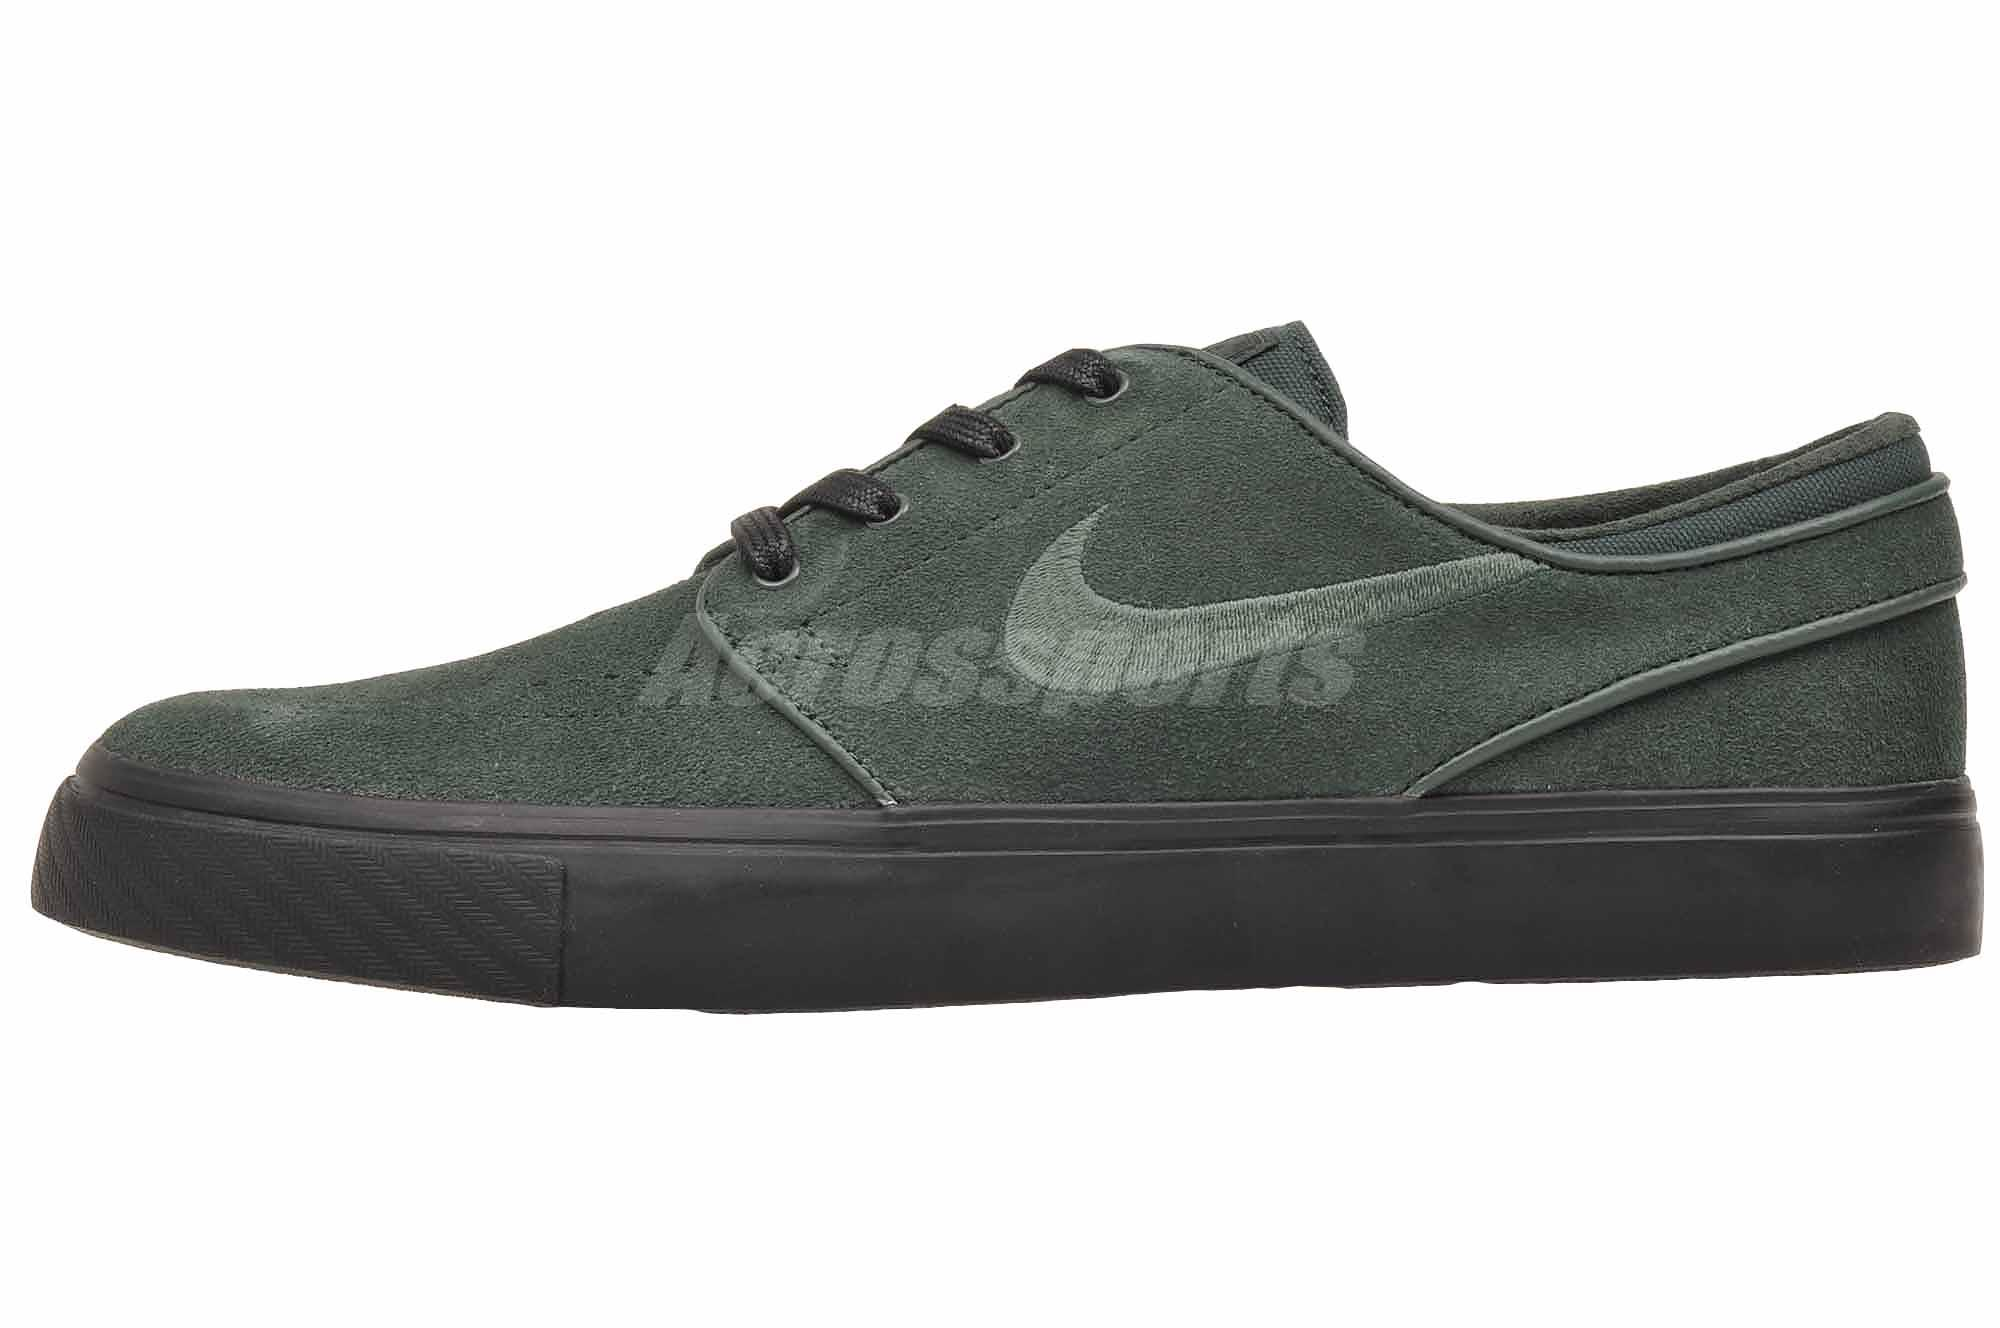 922b7d895776d Details about Nike Zoom Stefan Janoski Skate Boarding Mens SB Shoes Green  333824-312